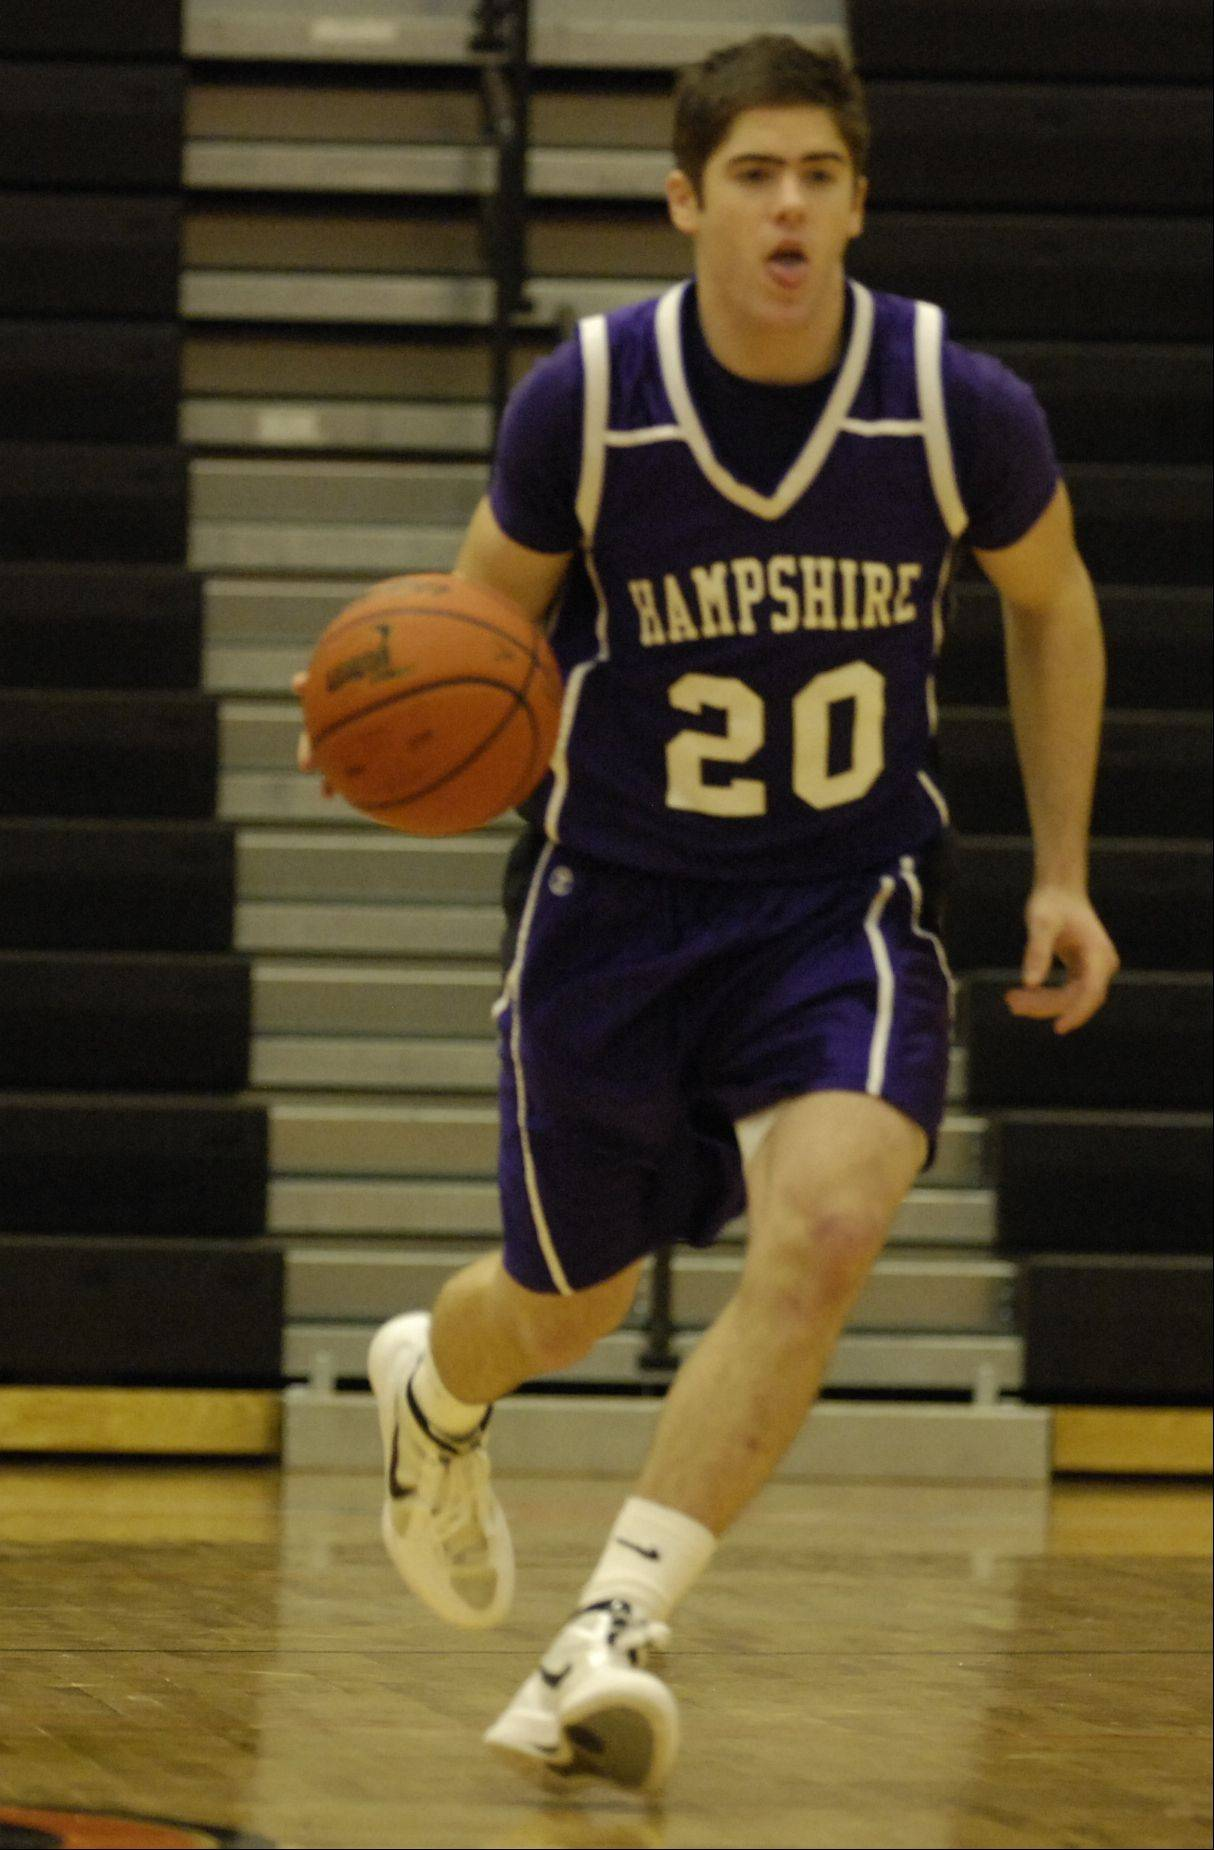 Images from the Hampshire vs. Sterling boys basketball game Wednesday, December 28, 2011.